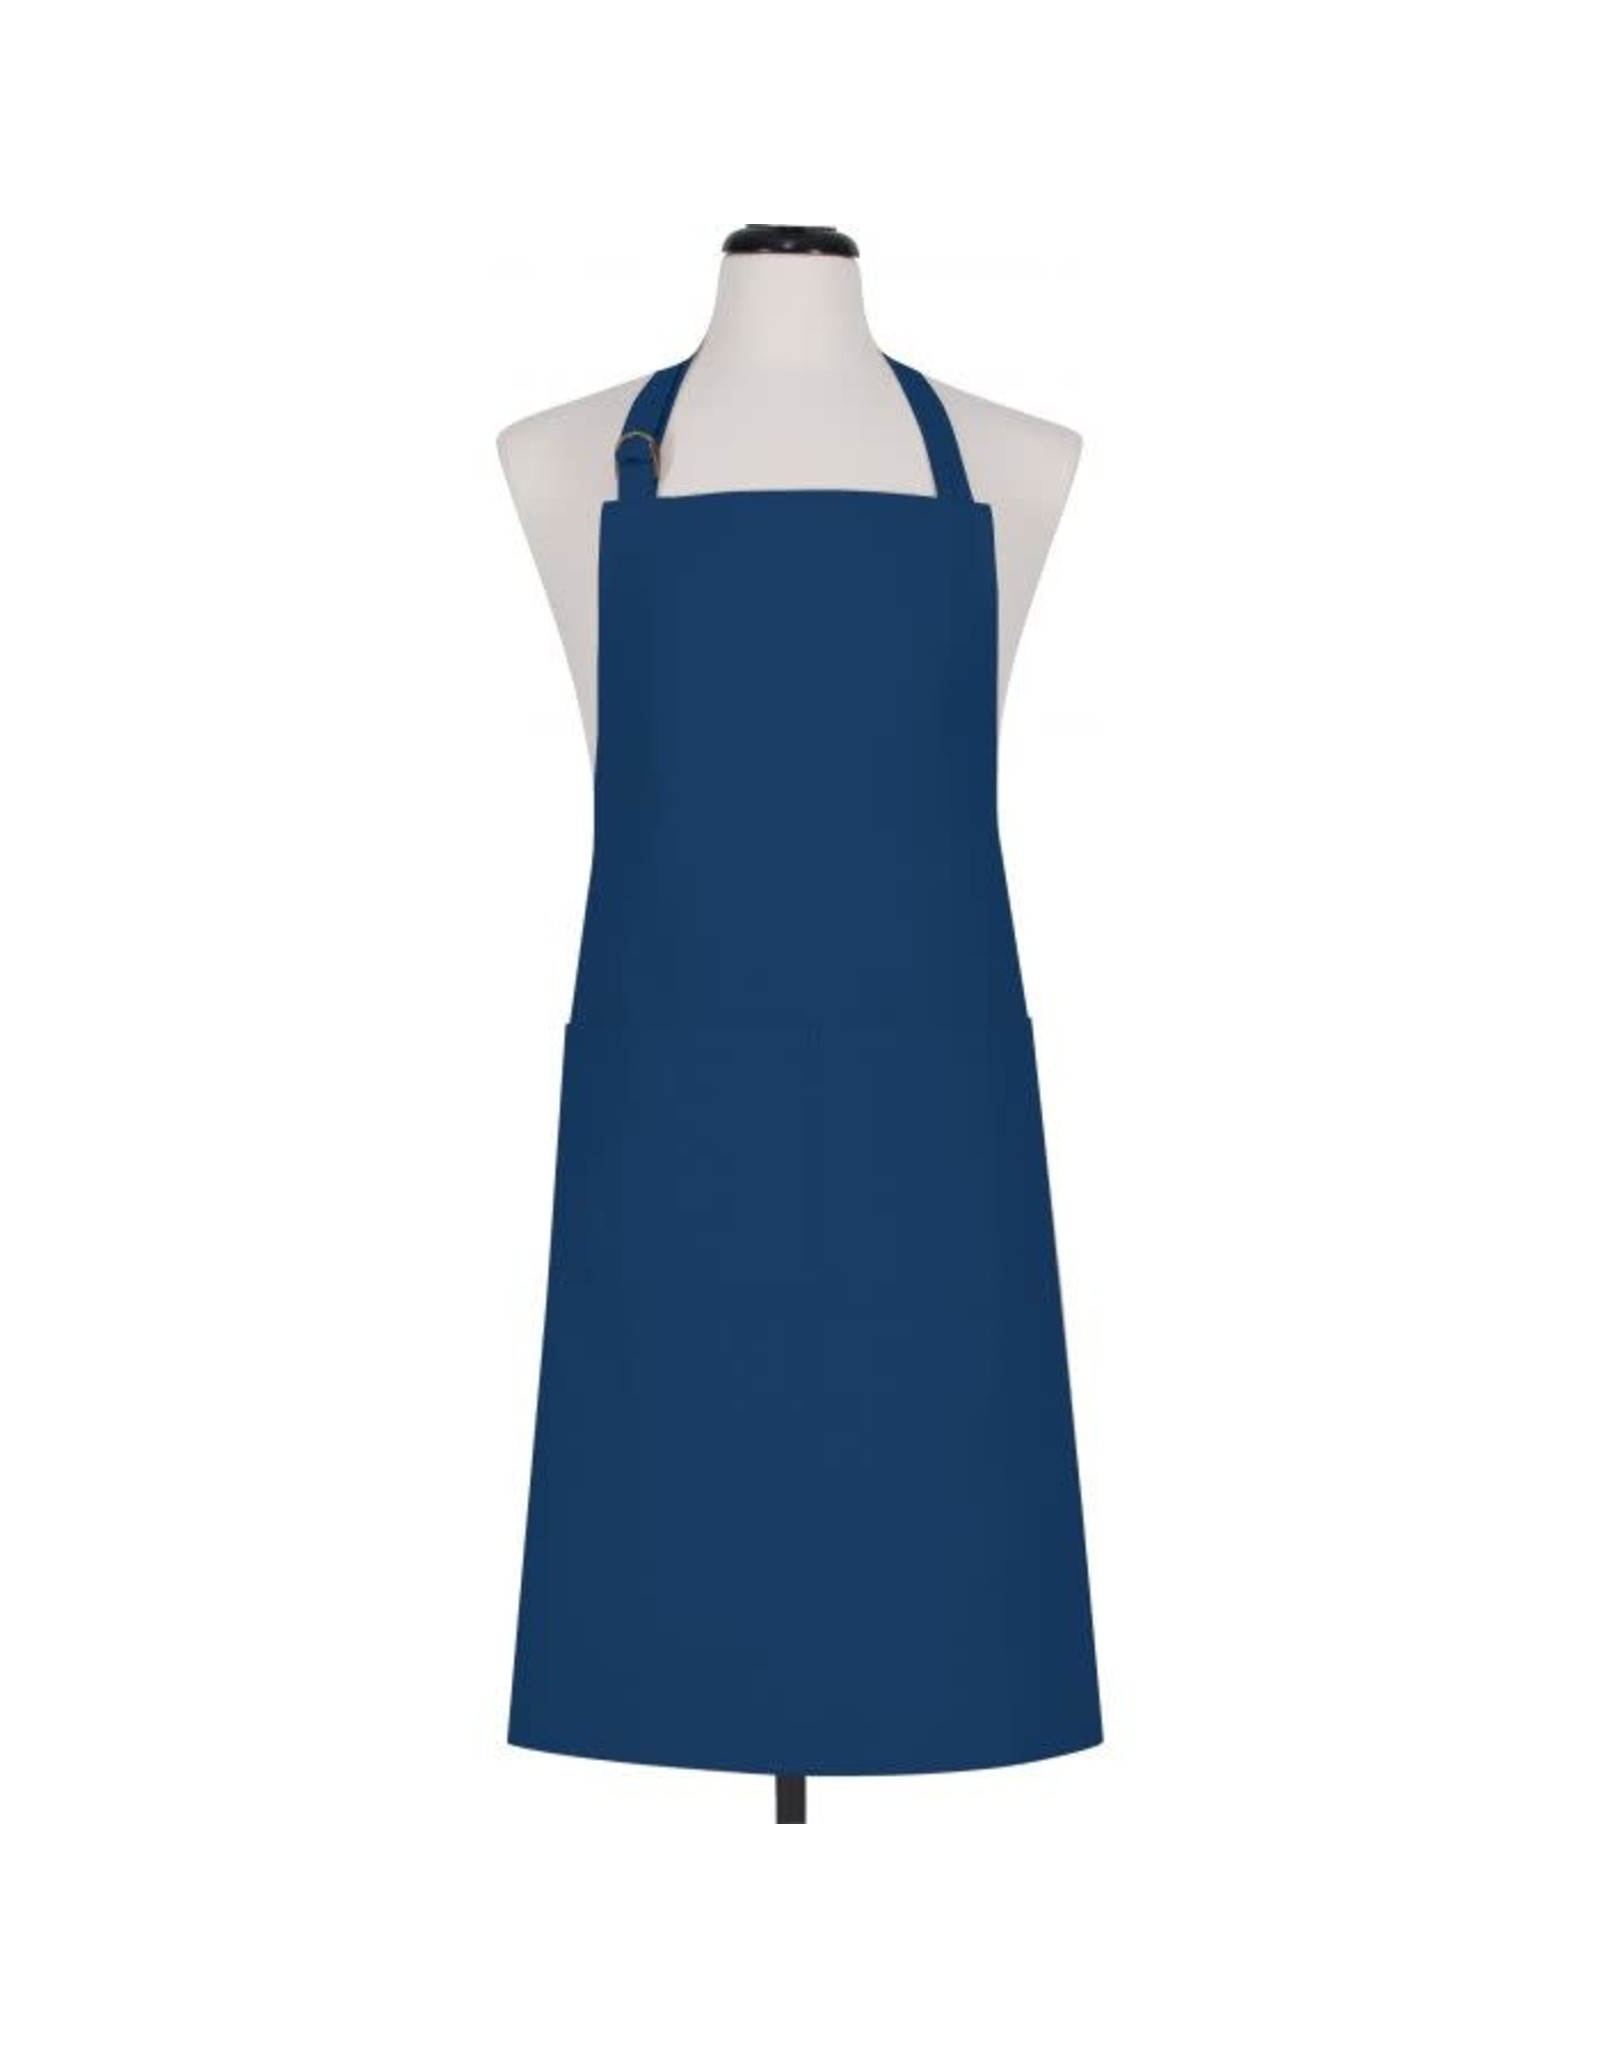 APRON,FULL ROYALBLUE